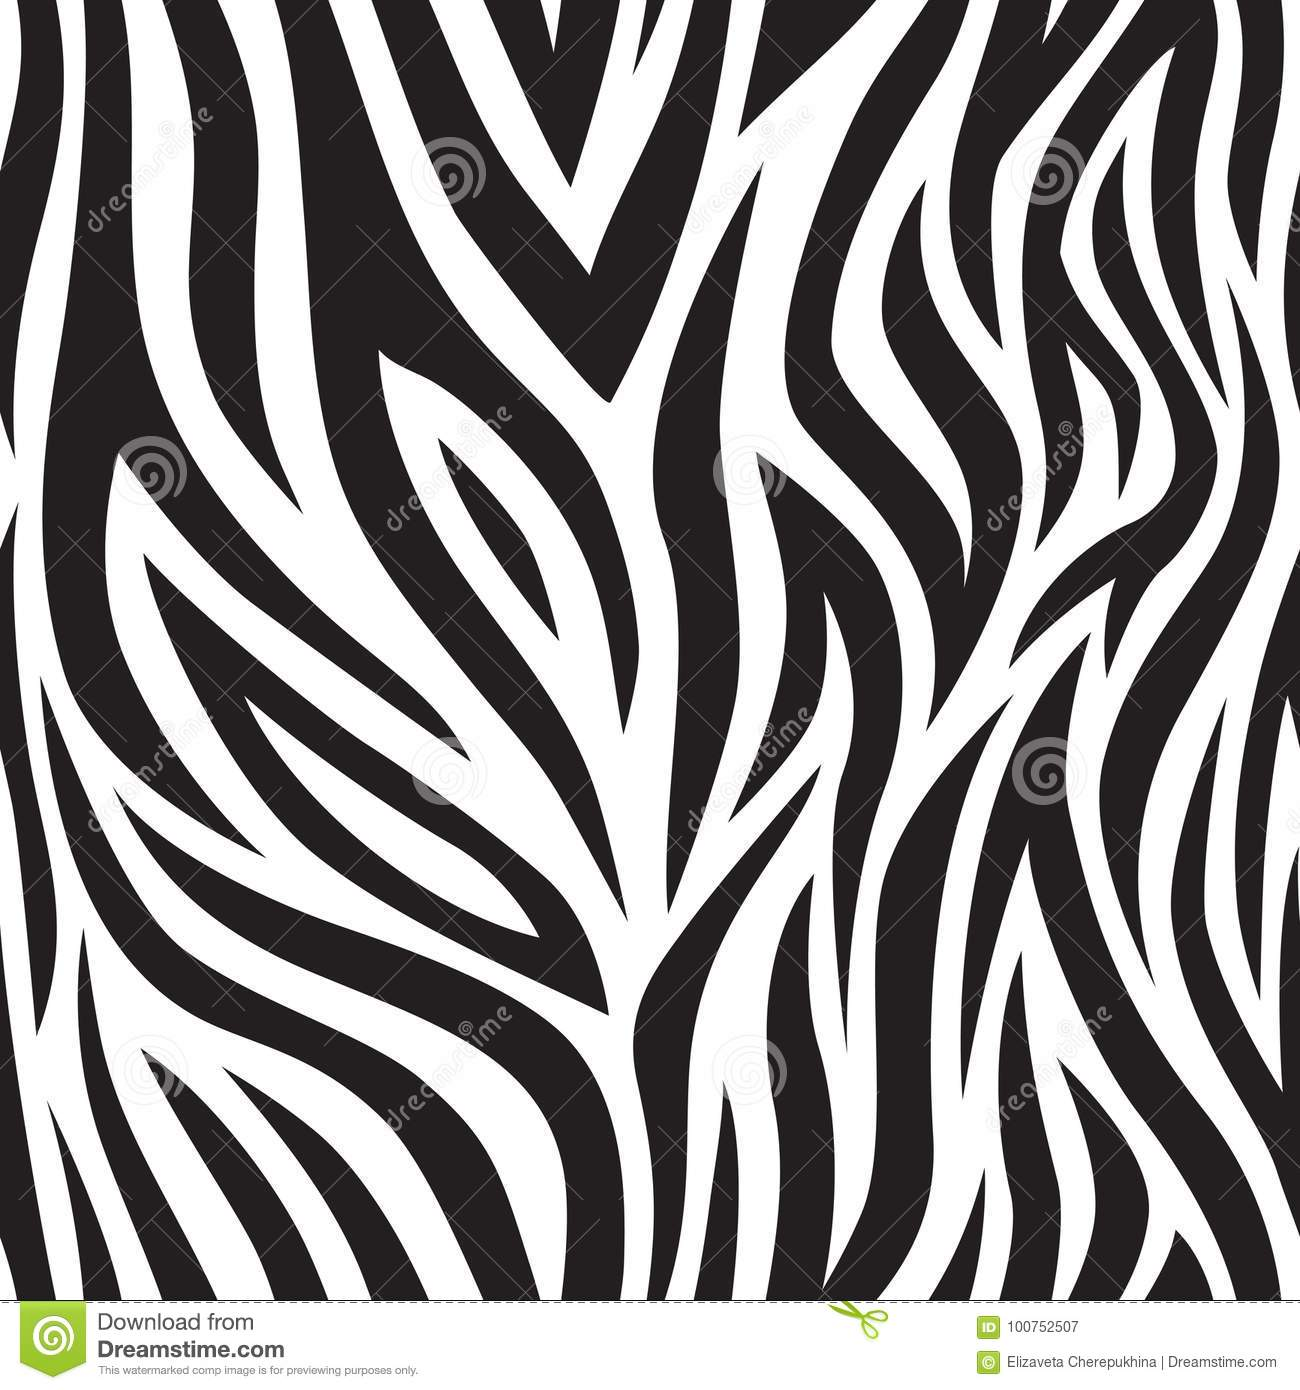 Black and white tiger stripes popular texture